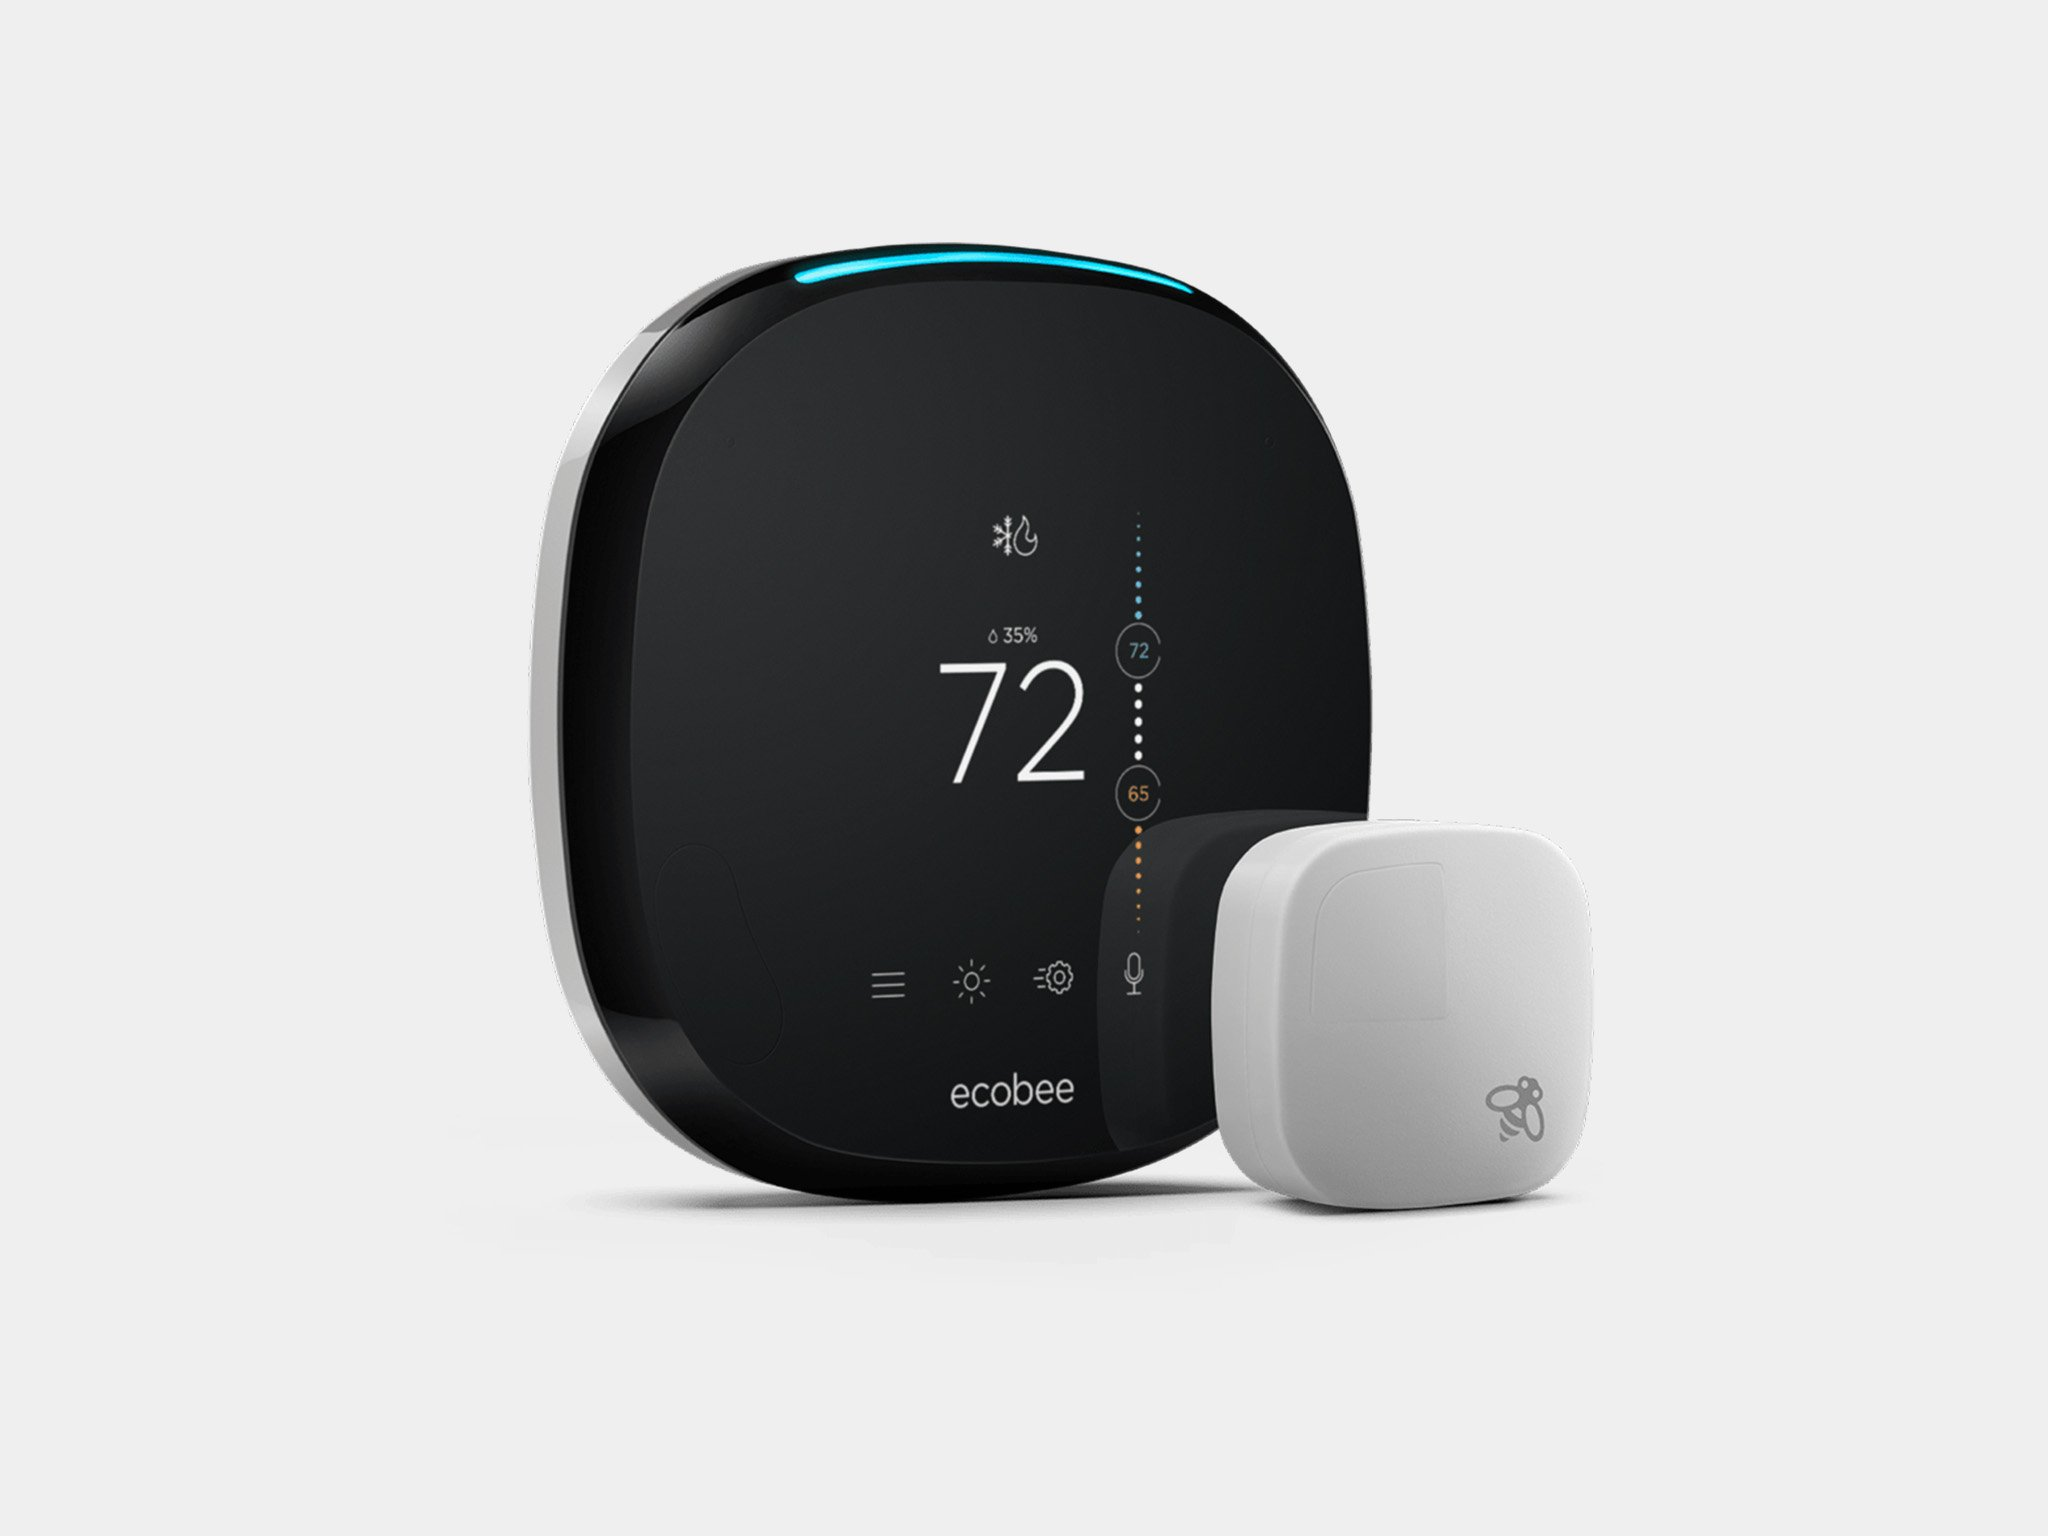 ecobee4 smart thermostat everything you need to know  [ 1600 x 1200 Pixel ]